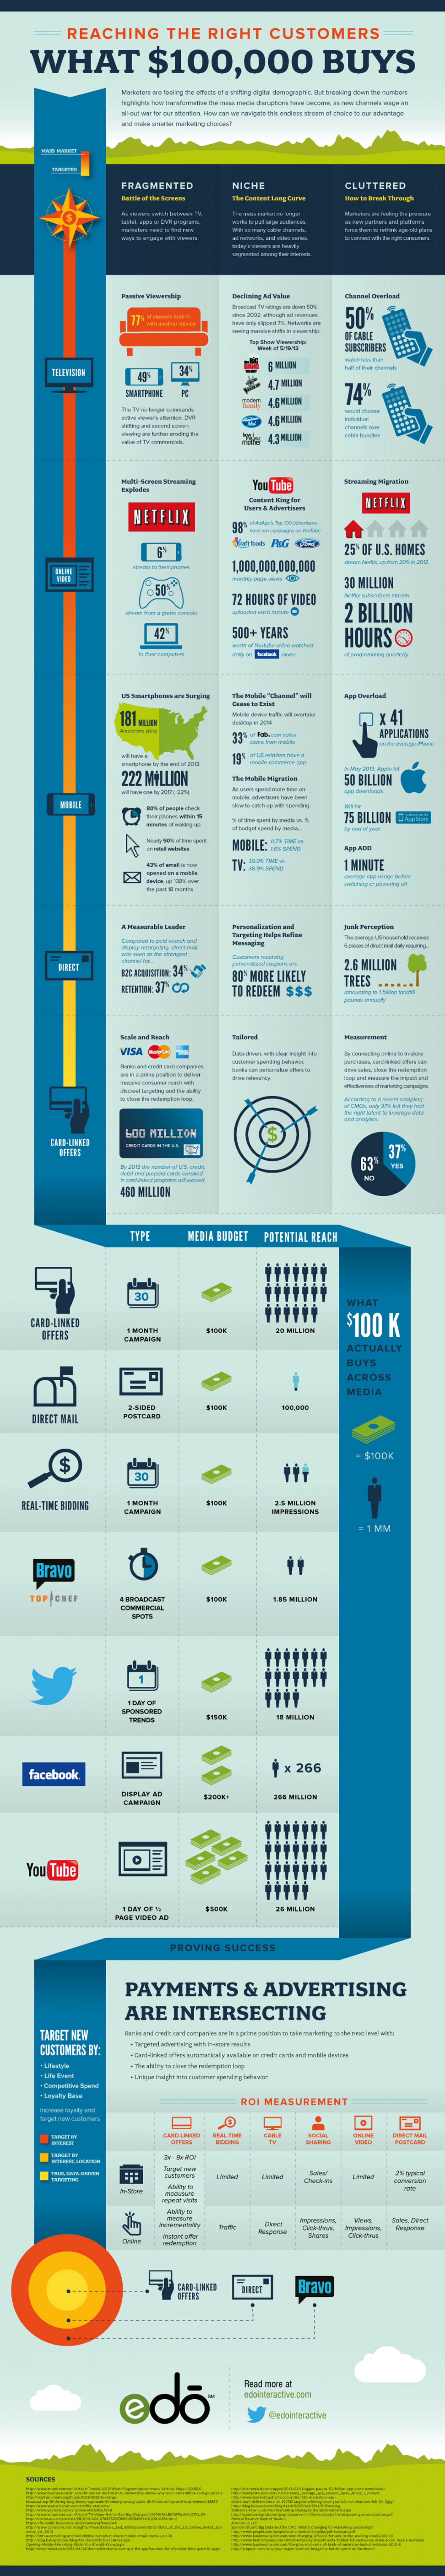 Digital Marketing Media and Reaching the Right Customers: What $100,000 Buys Infographic